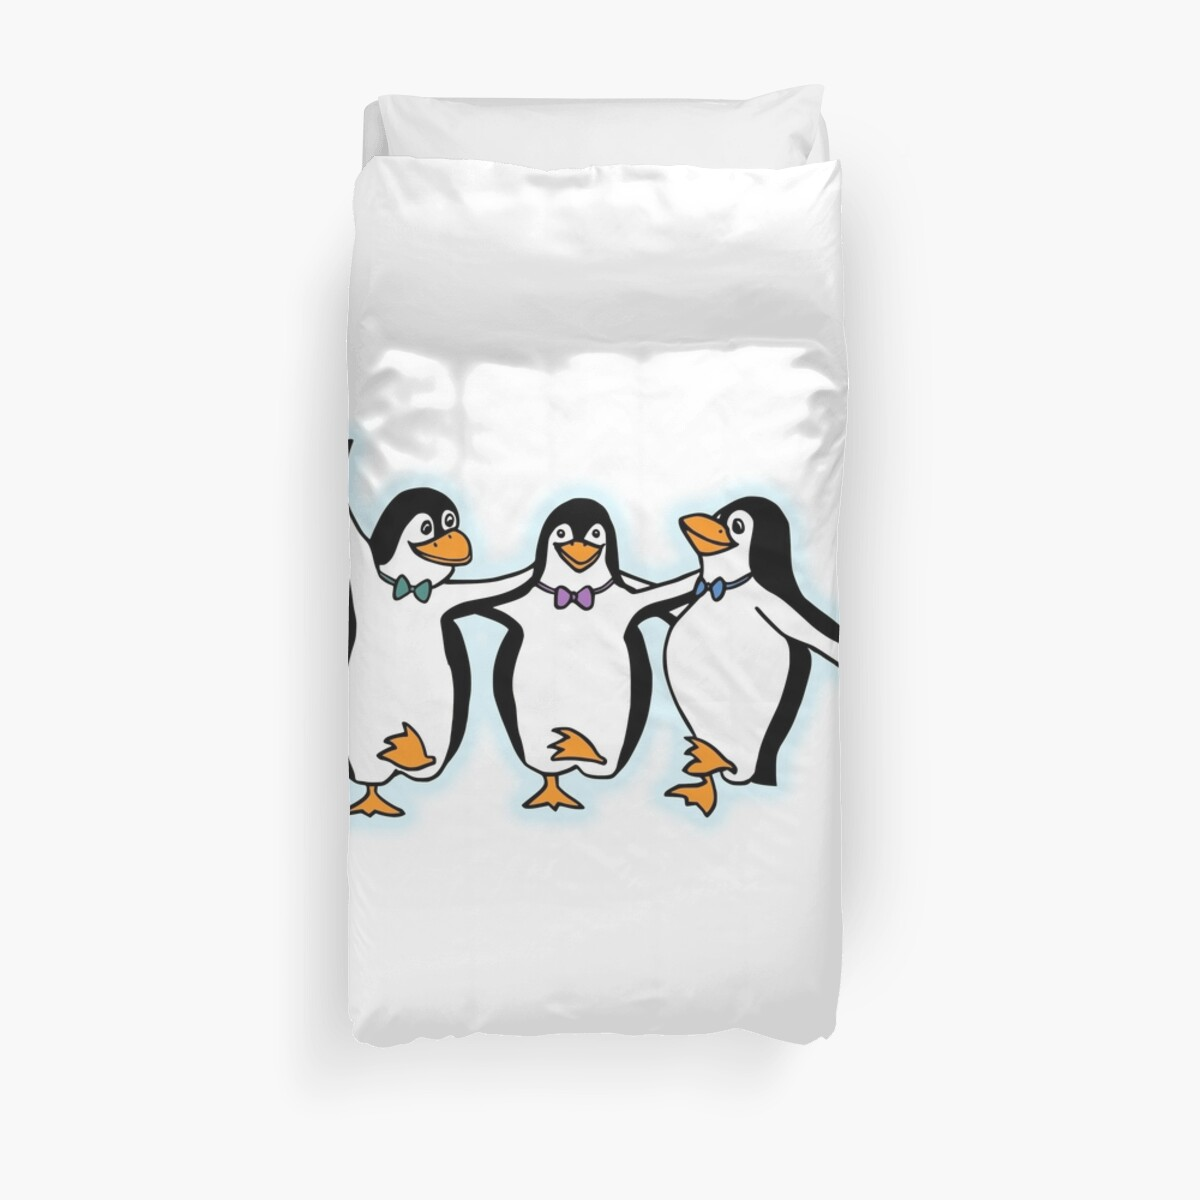 Penguin, Party, Dancing, Cartoon, FUN, Funny by TOM HILL - Designer